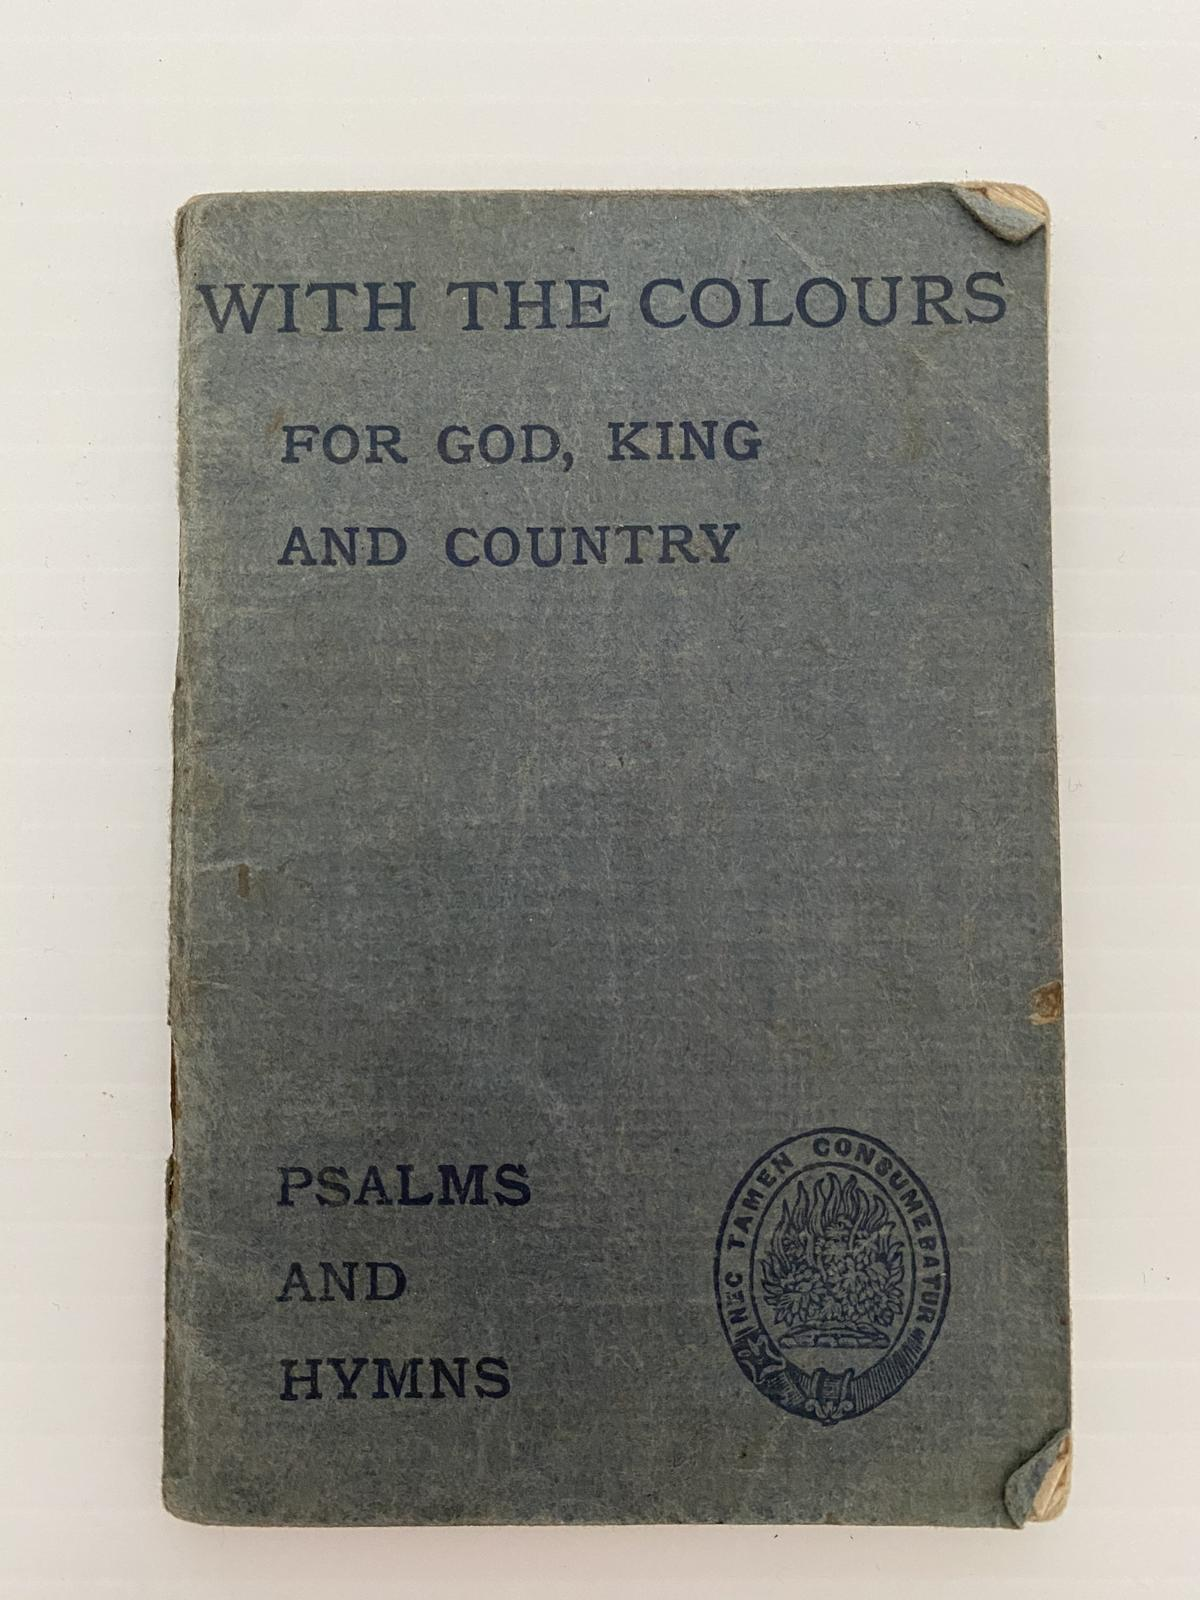 Hymn and Psalm Pocketbook